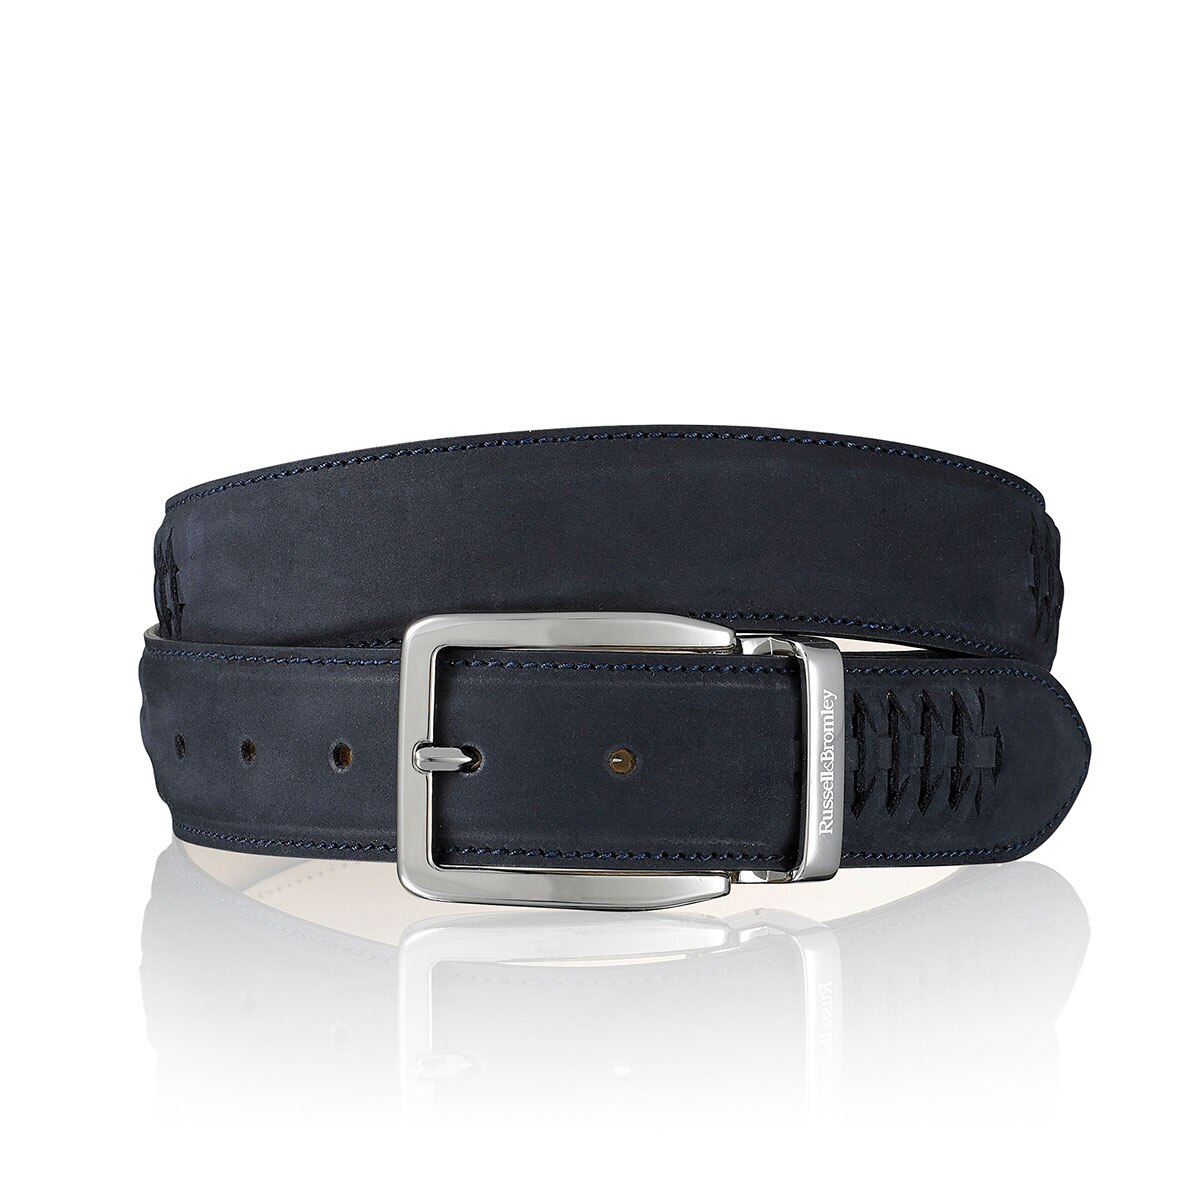 CUTTER Leather Belt